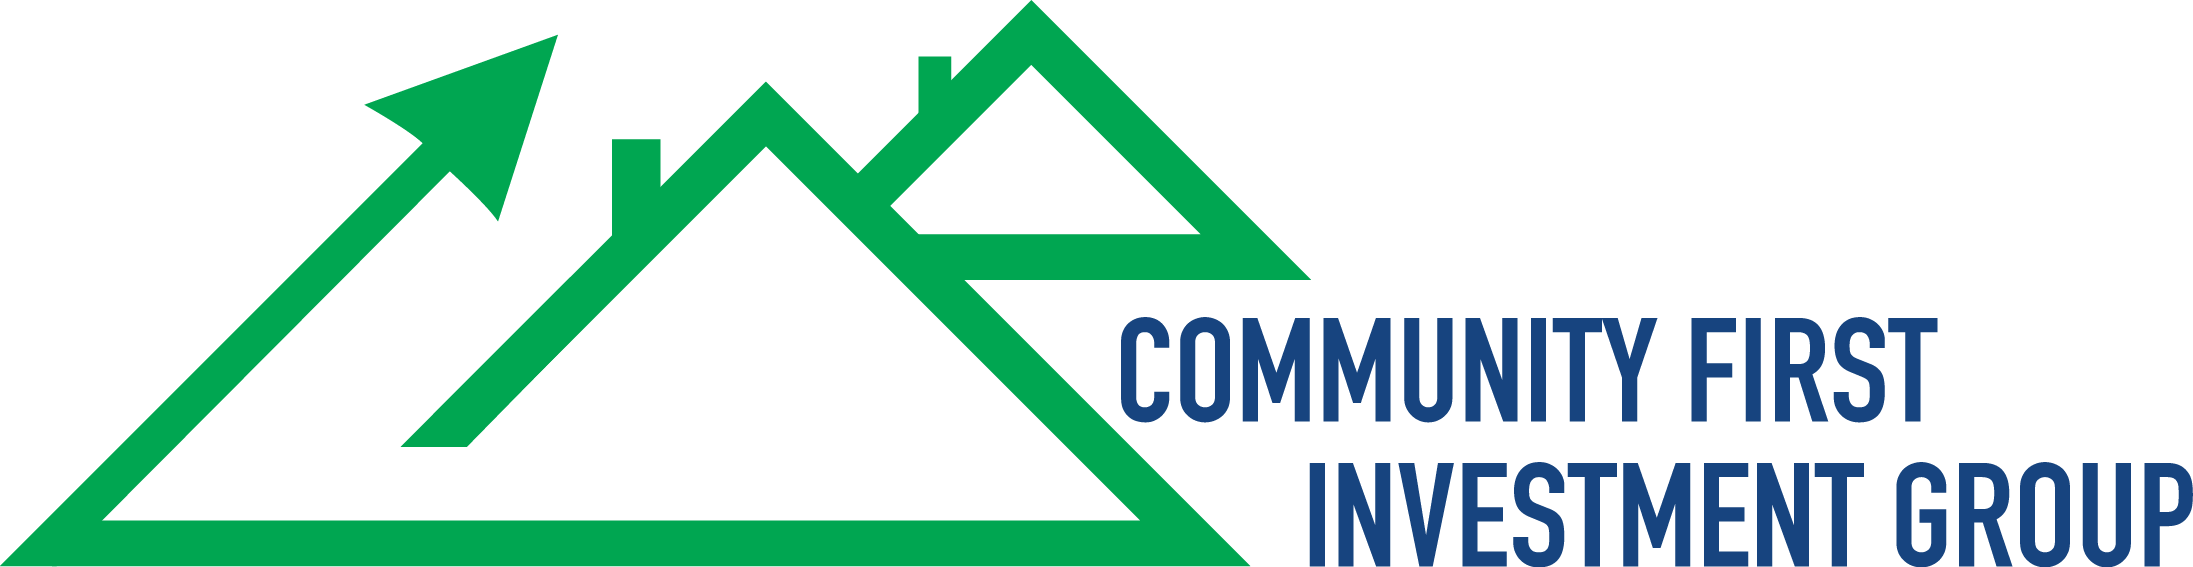 Community First Investment Group